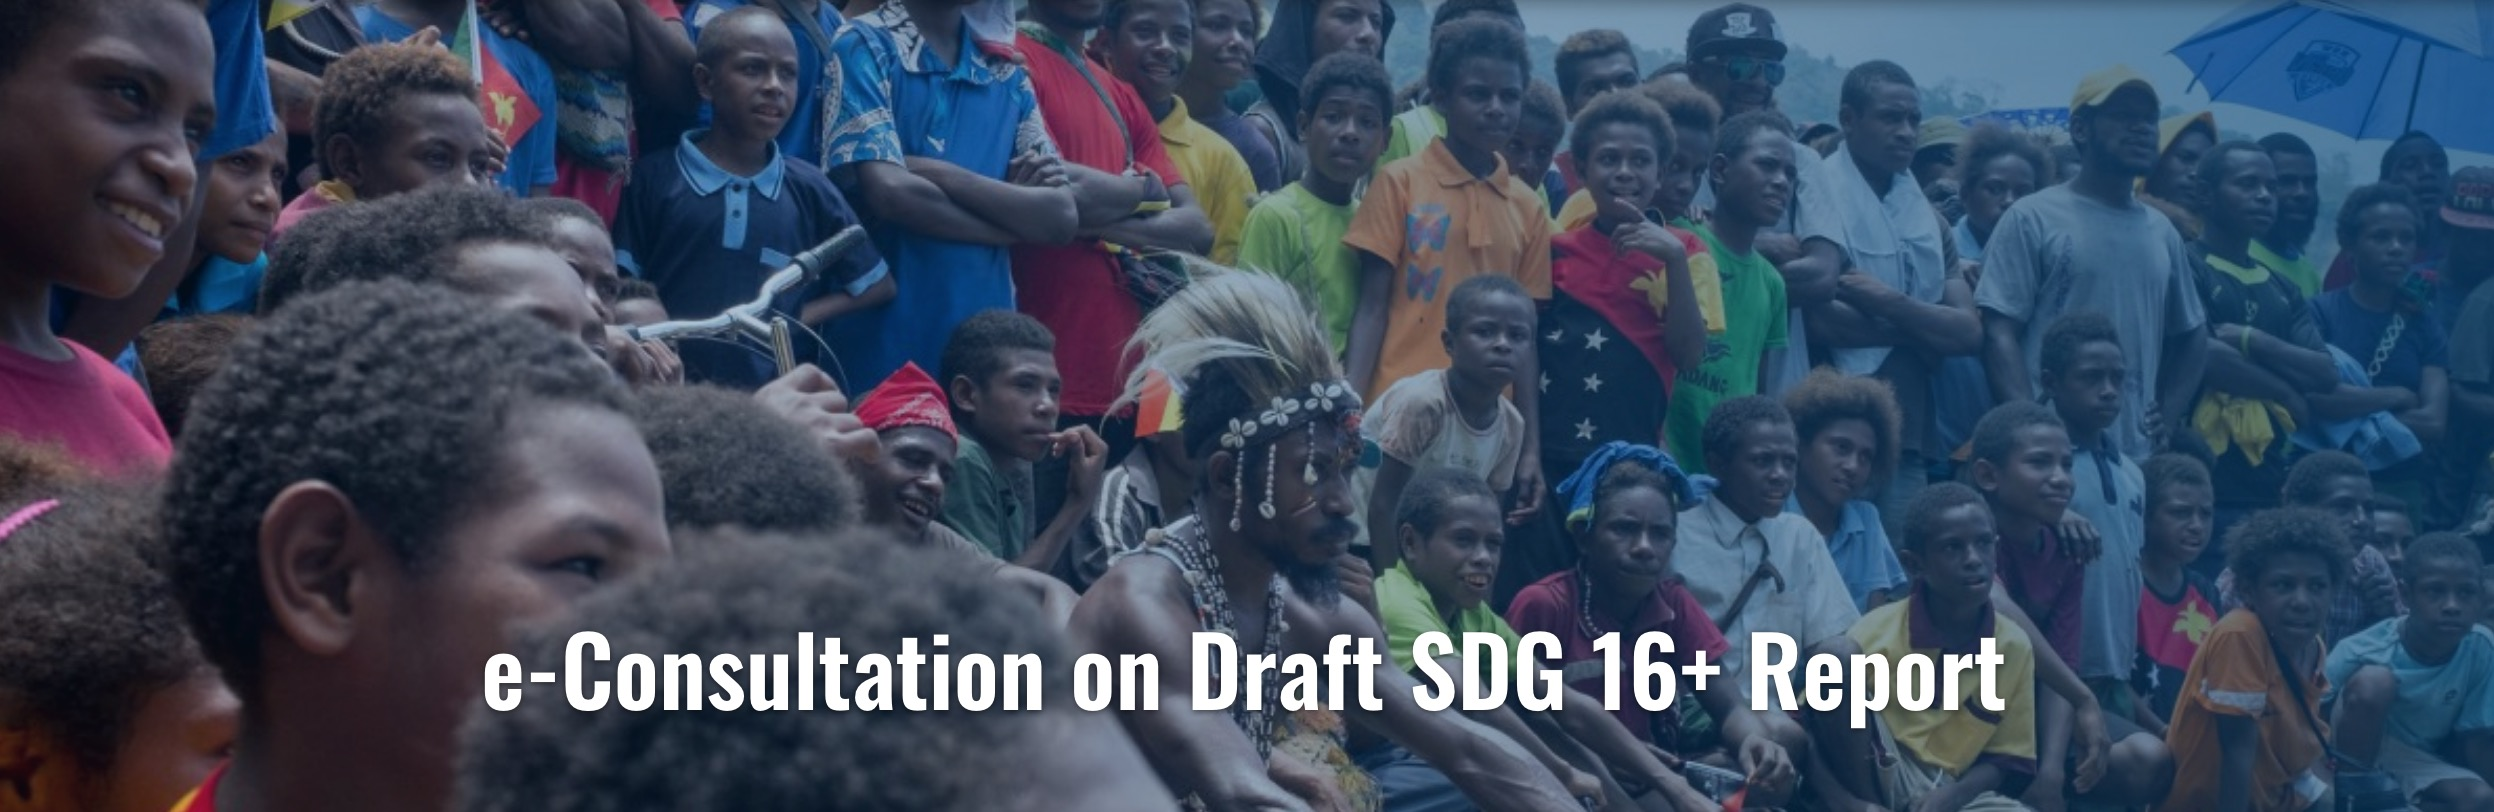 e-Consultation on priority areas for action from the draft SDG 16+ Report now open!